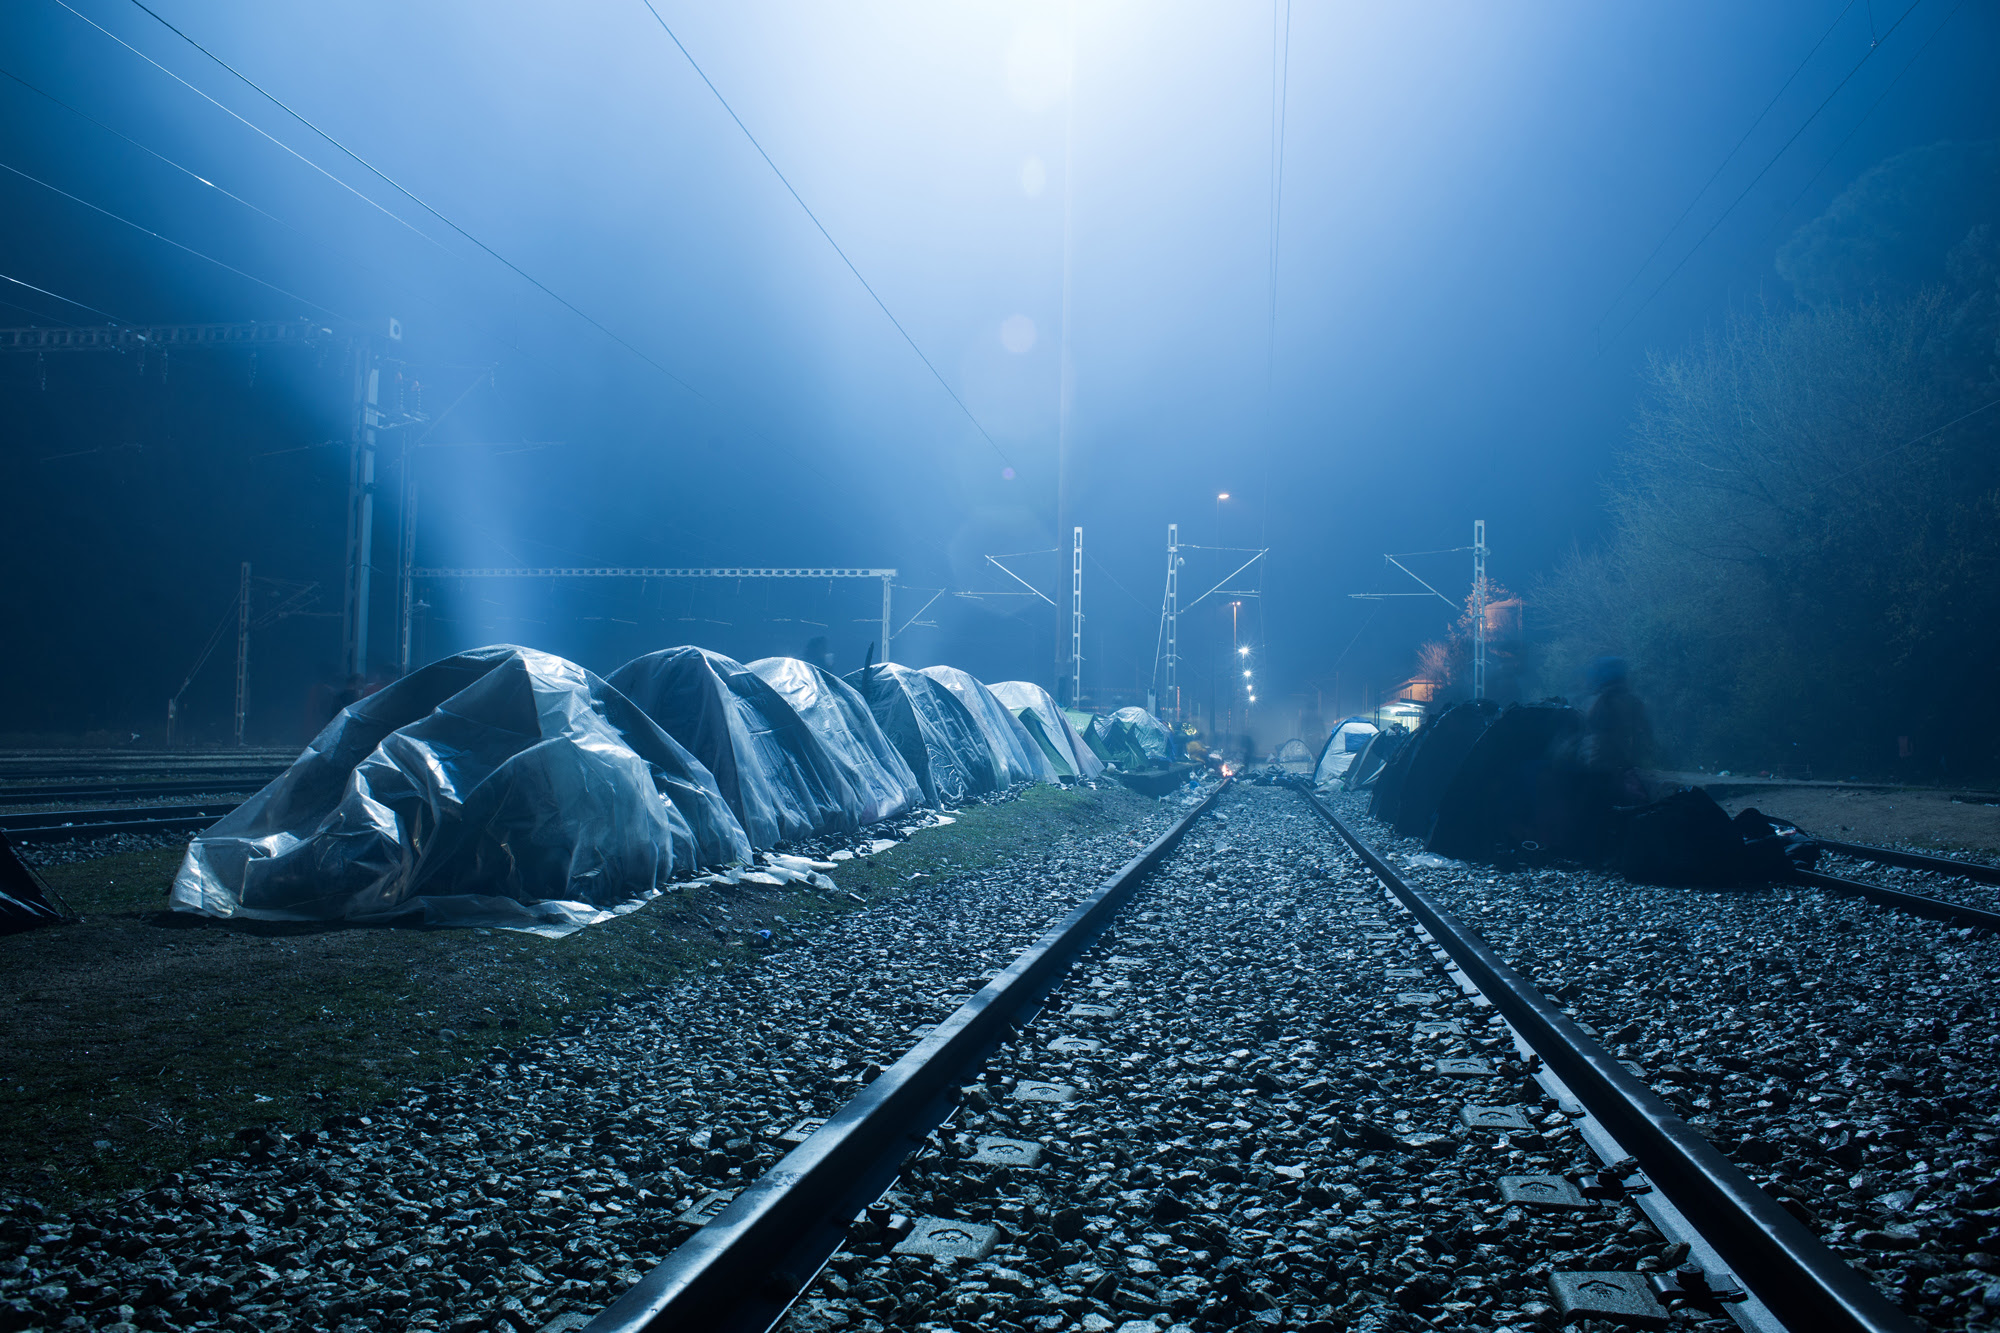 Photo by Stylianos Papardelas, occupied tents lining a railroad track